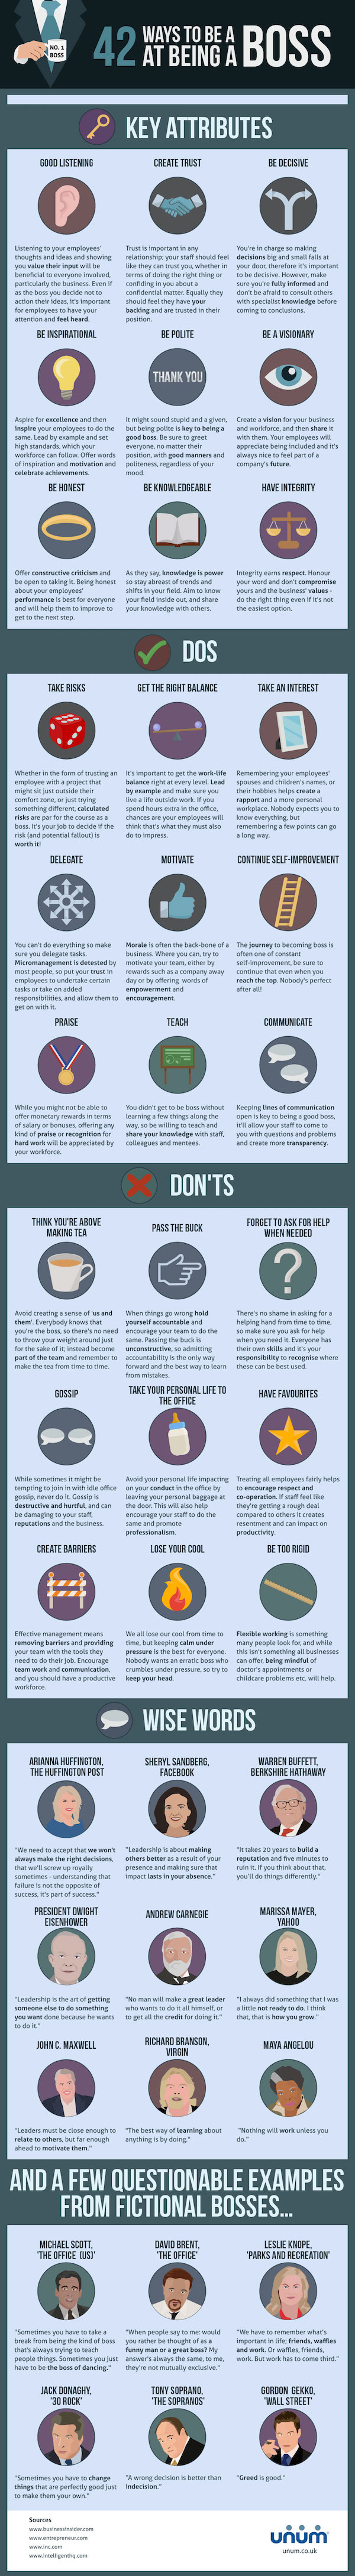 42-ways-to-be-a-boss-at-being-a-boss